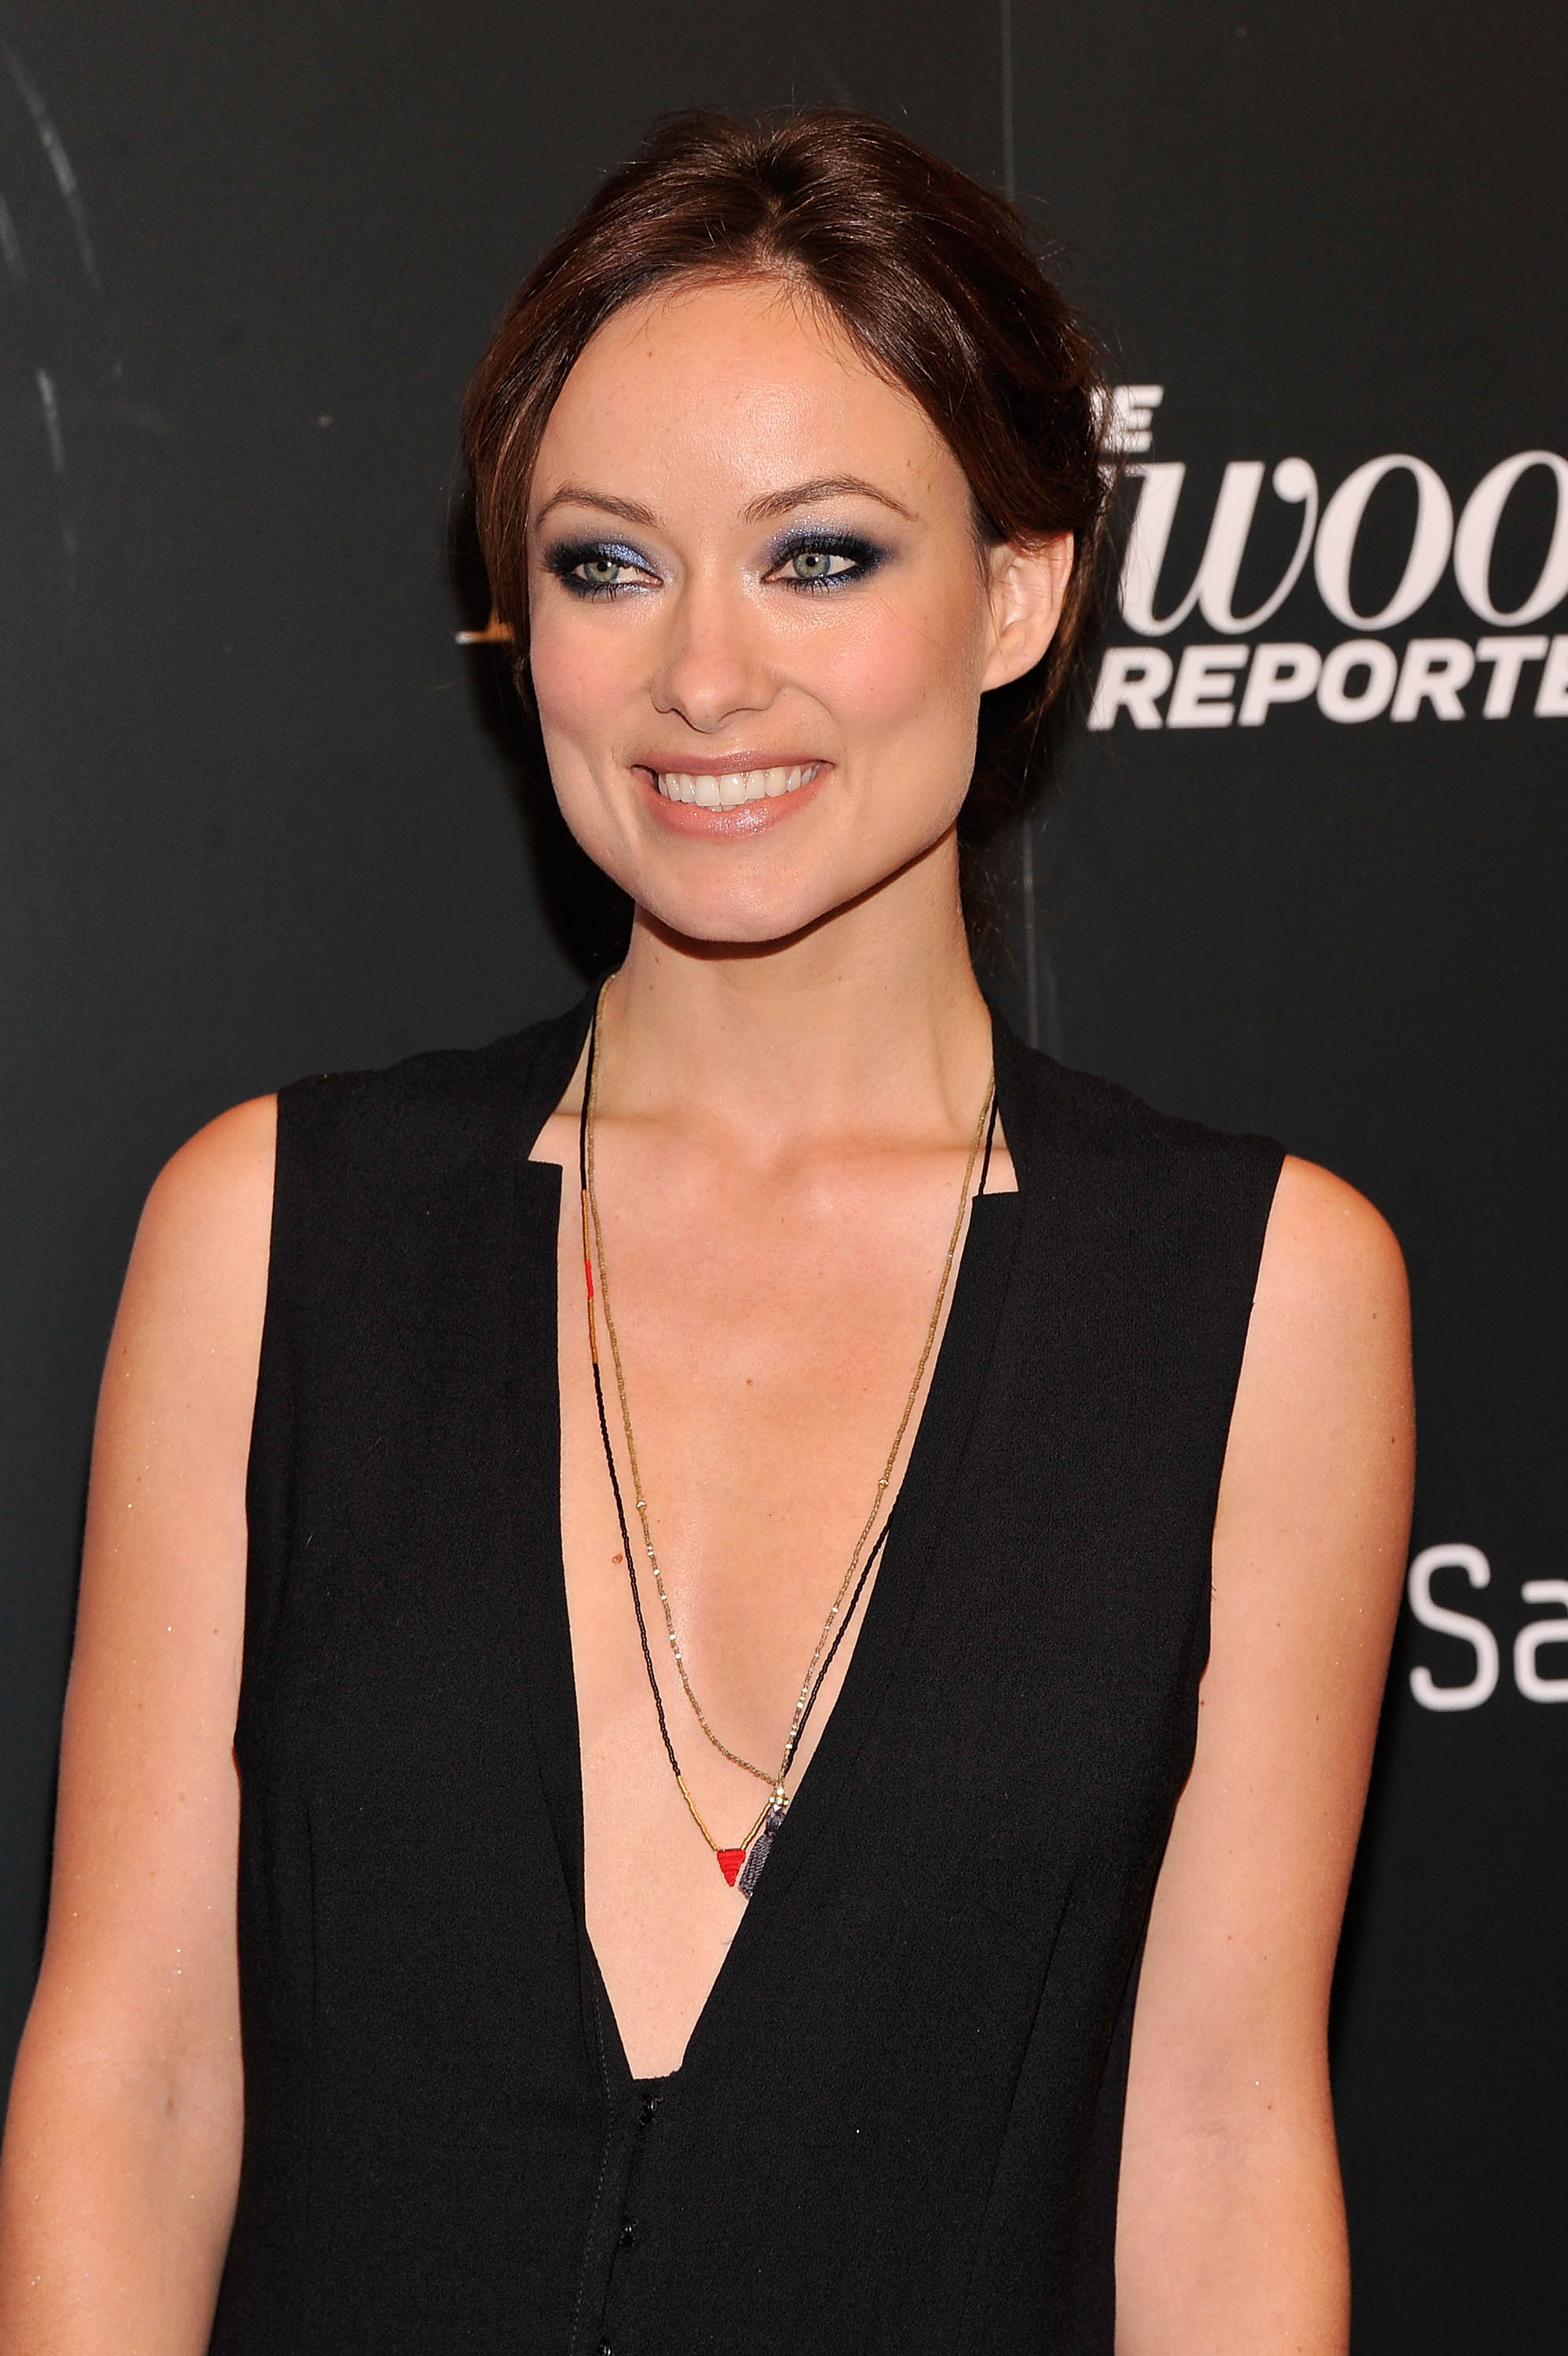 Olivia Wilde Profile And New Pictures 2013: Olivia Wilde Braless Wearing A Wide Open Top At 'Django